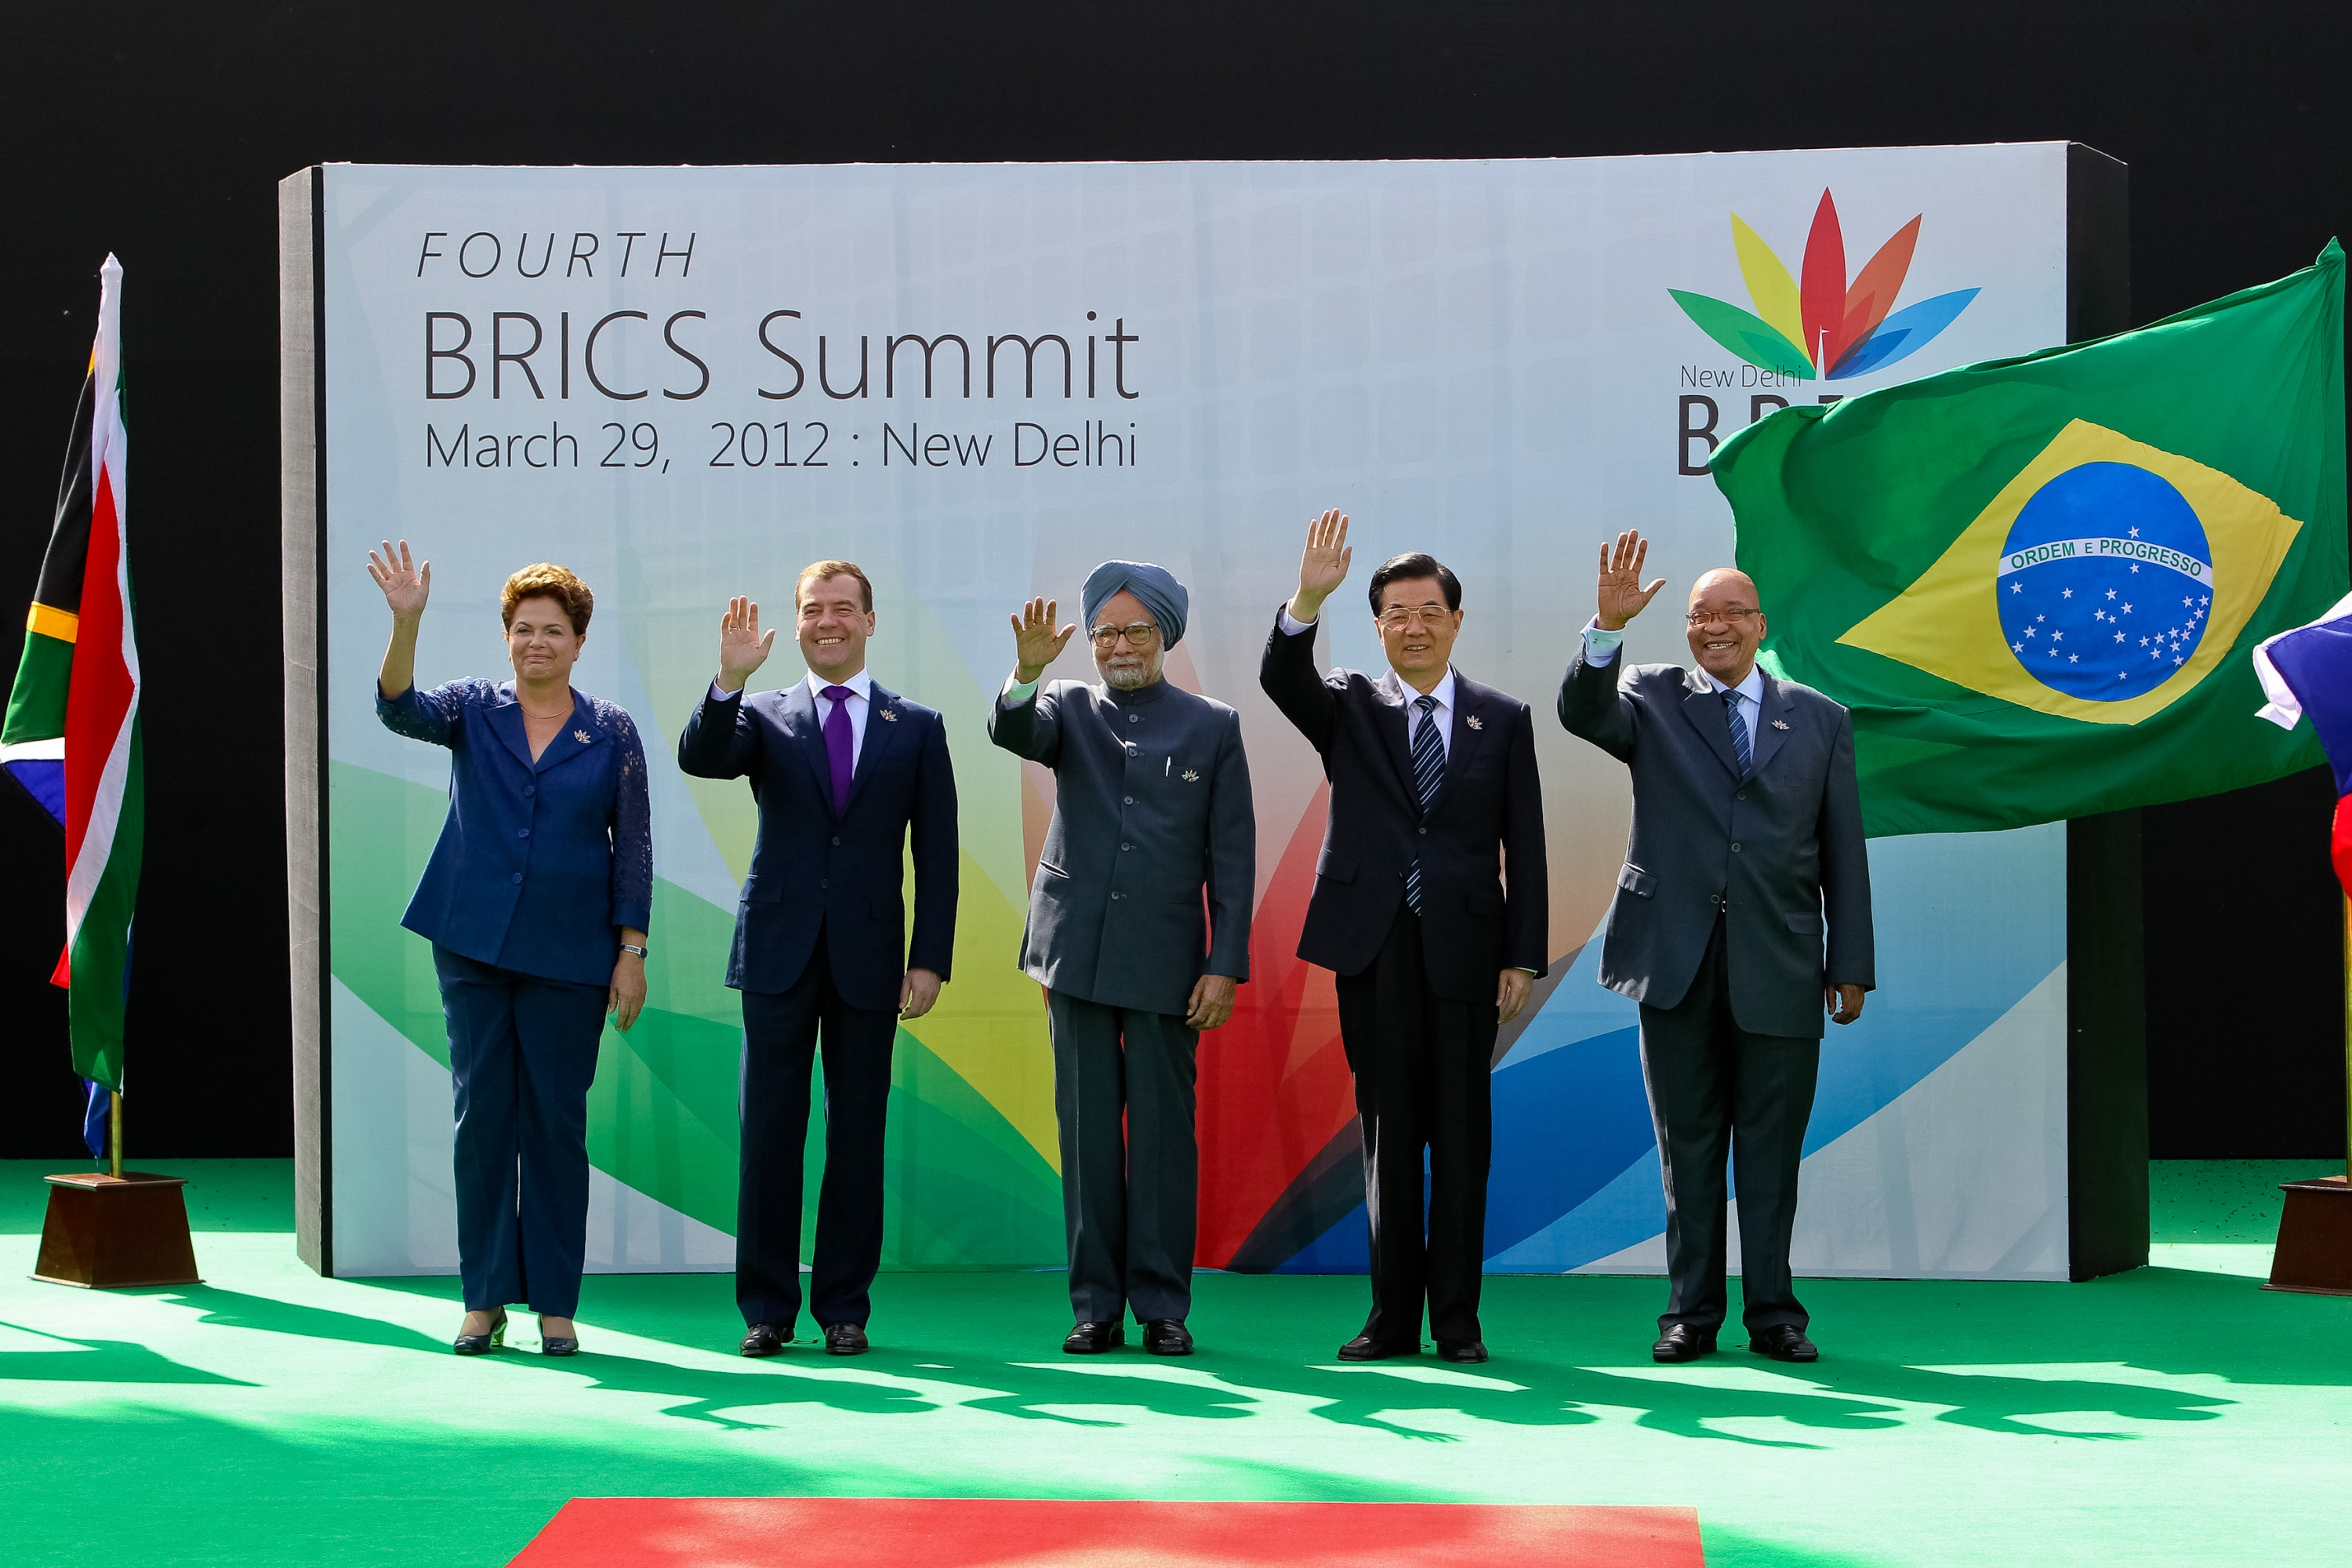 BRICS summit photo op